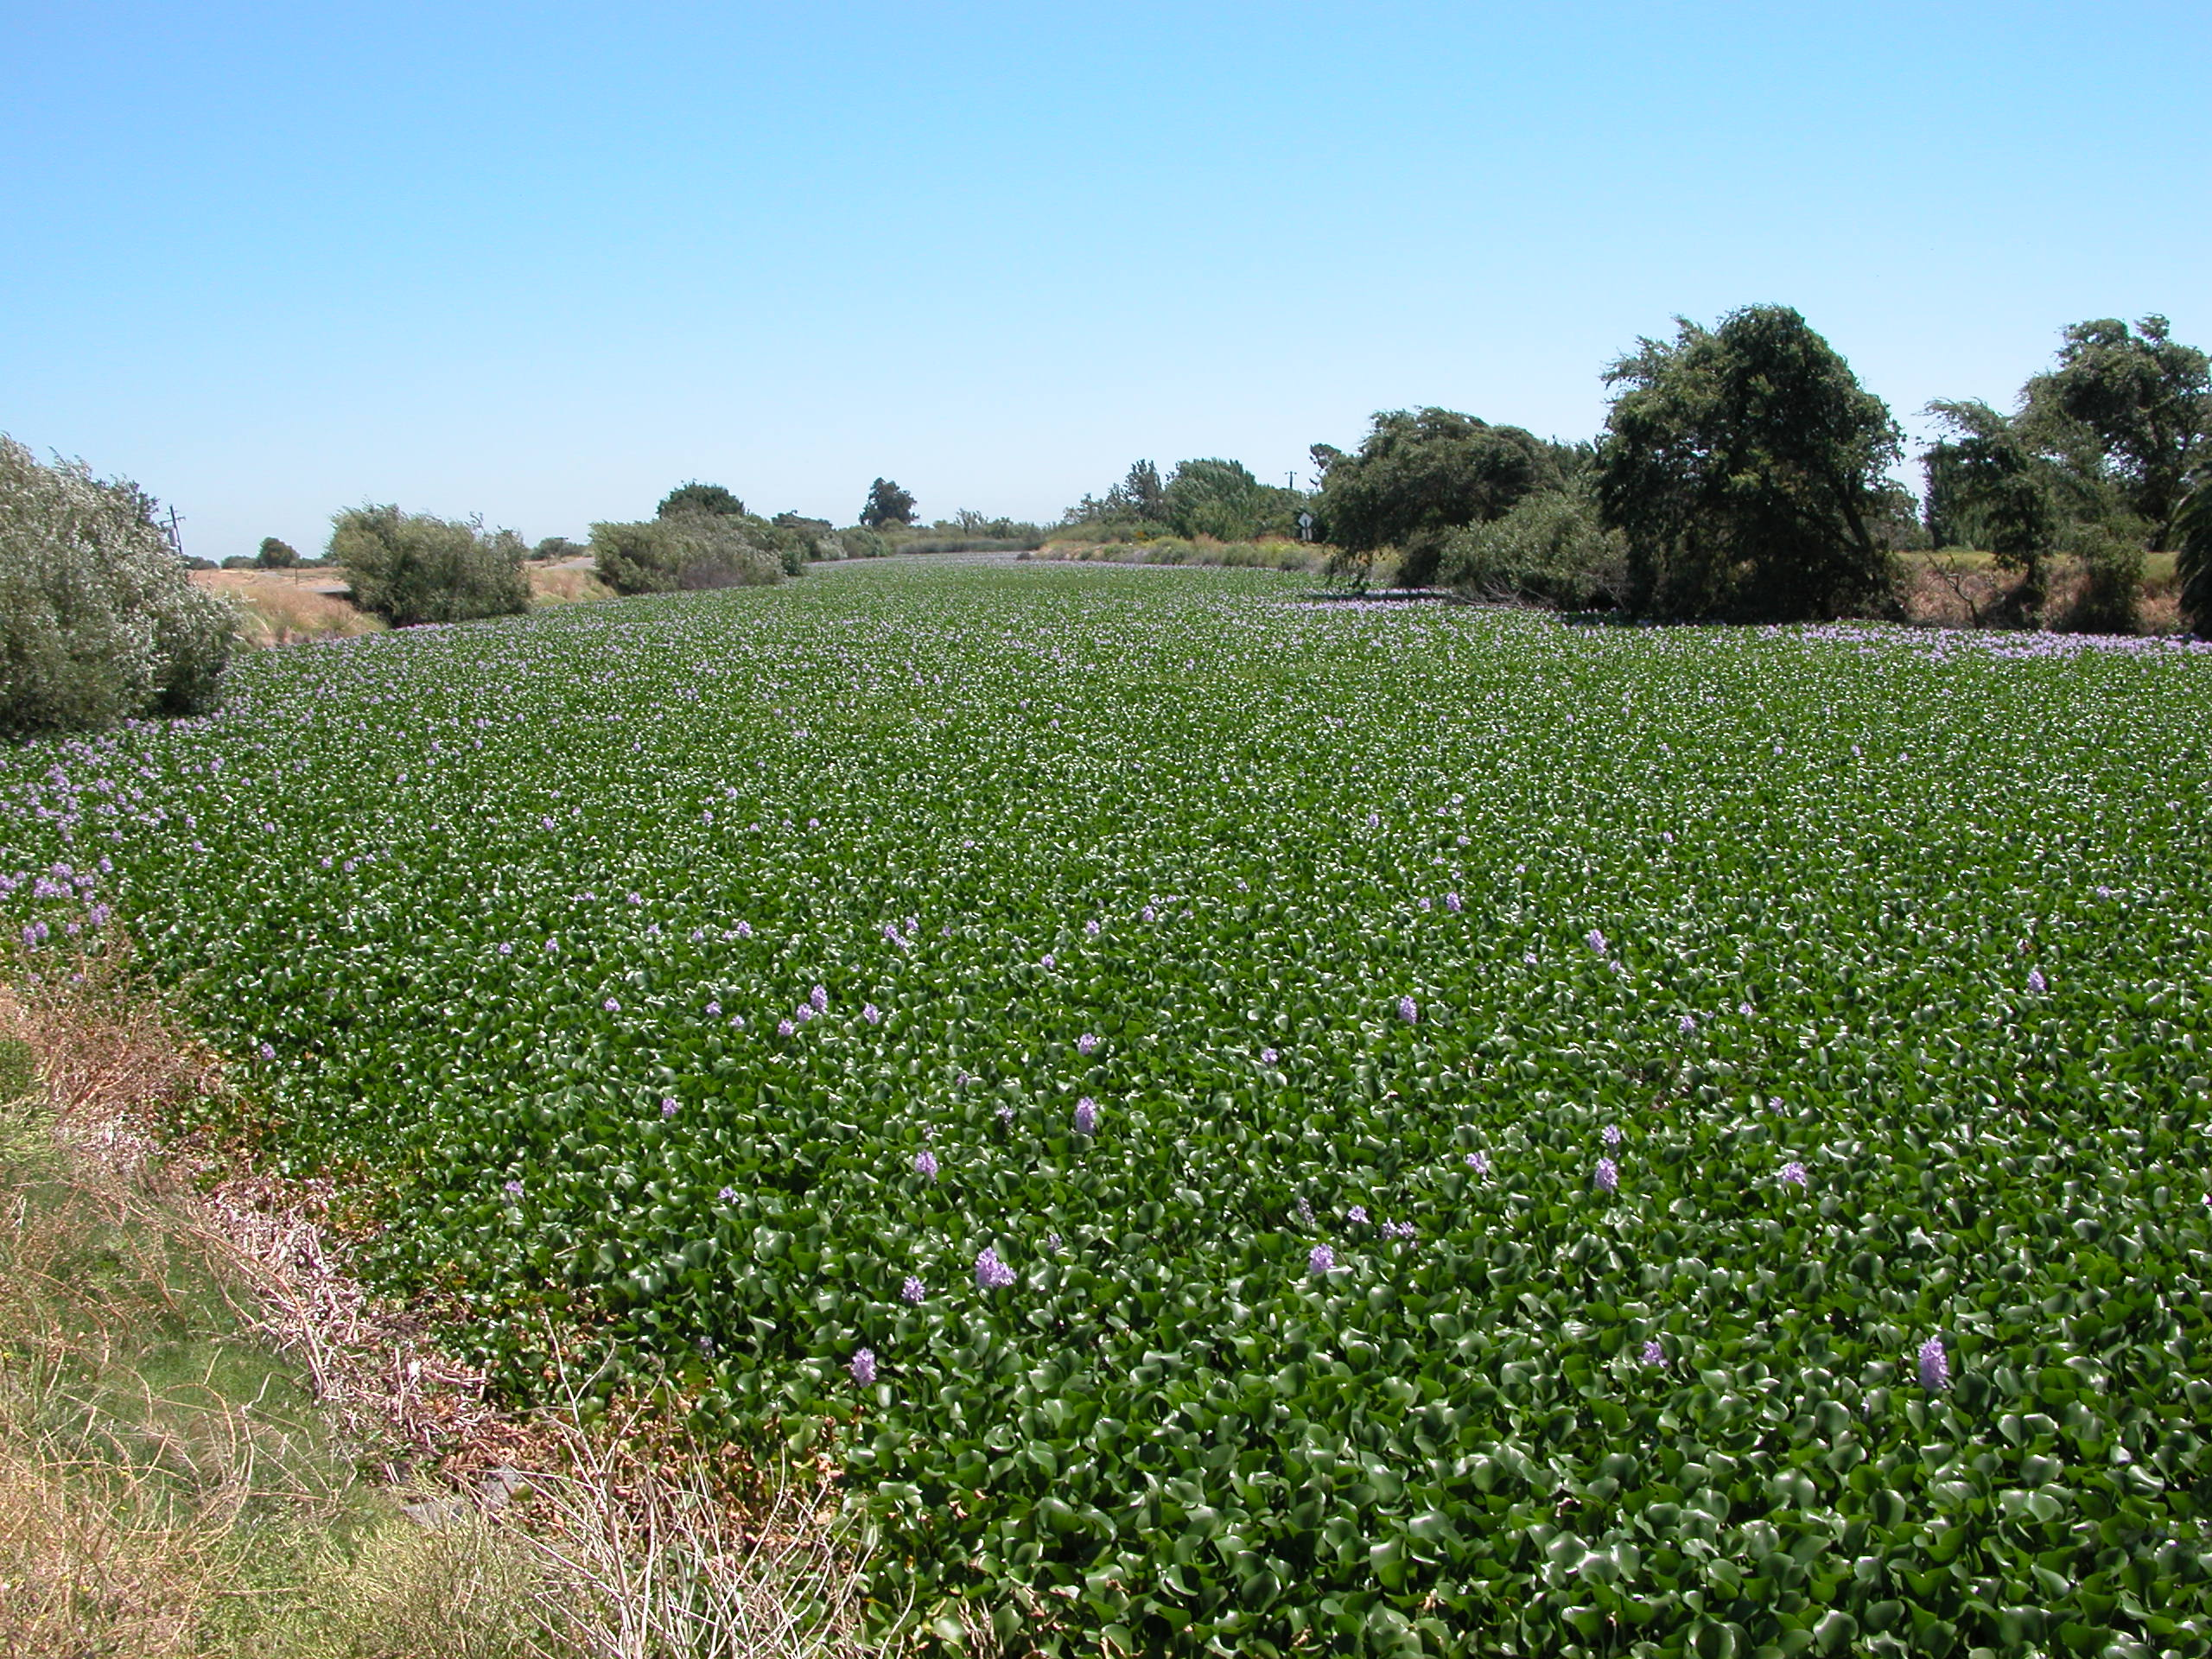 Water hyacinth (Eichhornia crassipes) in a slough covering the water